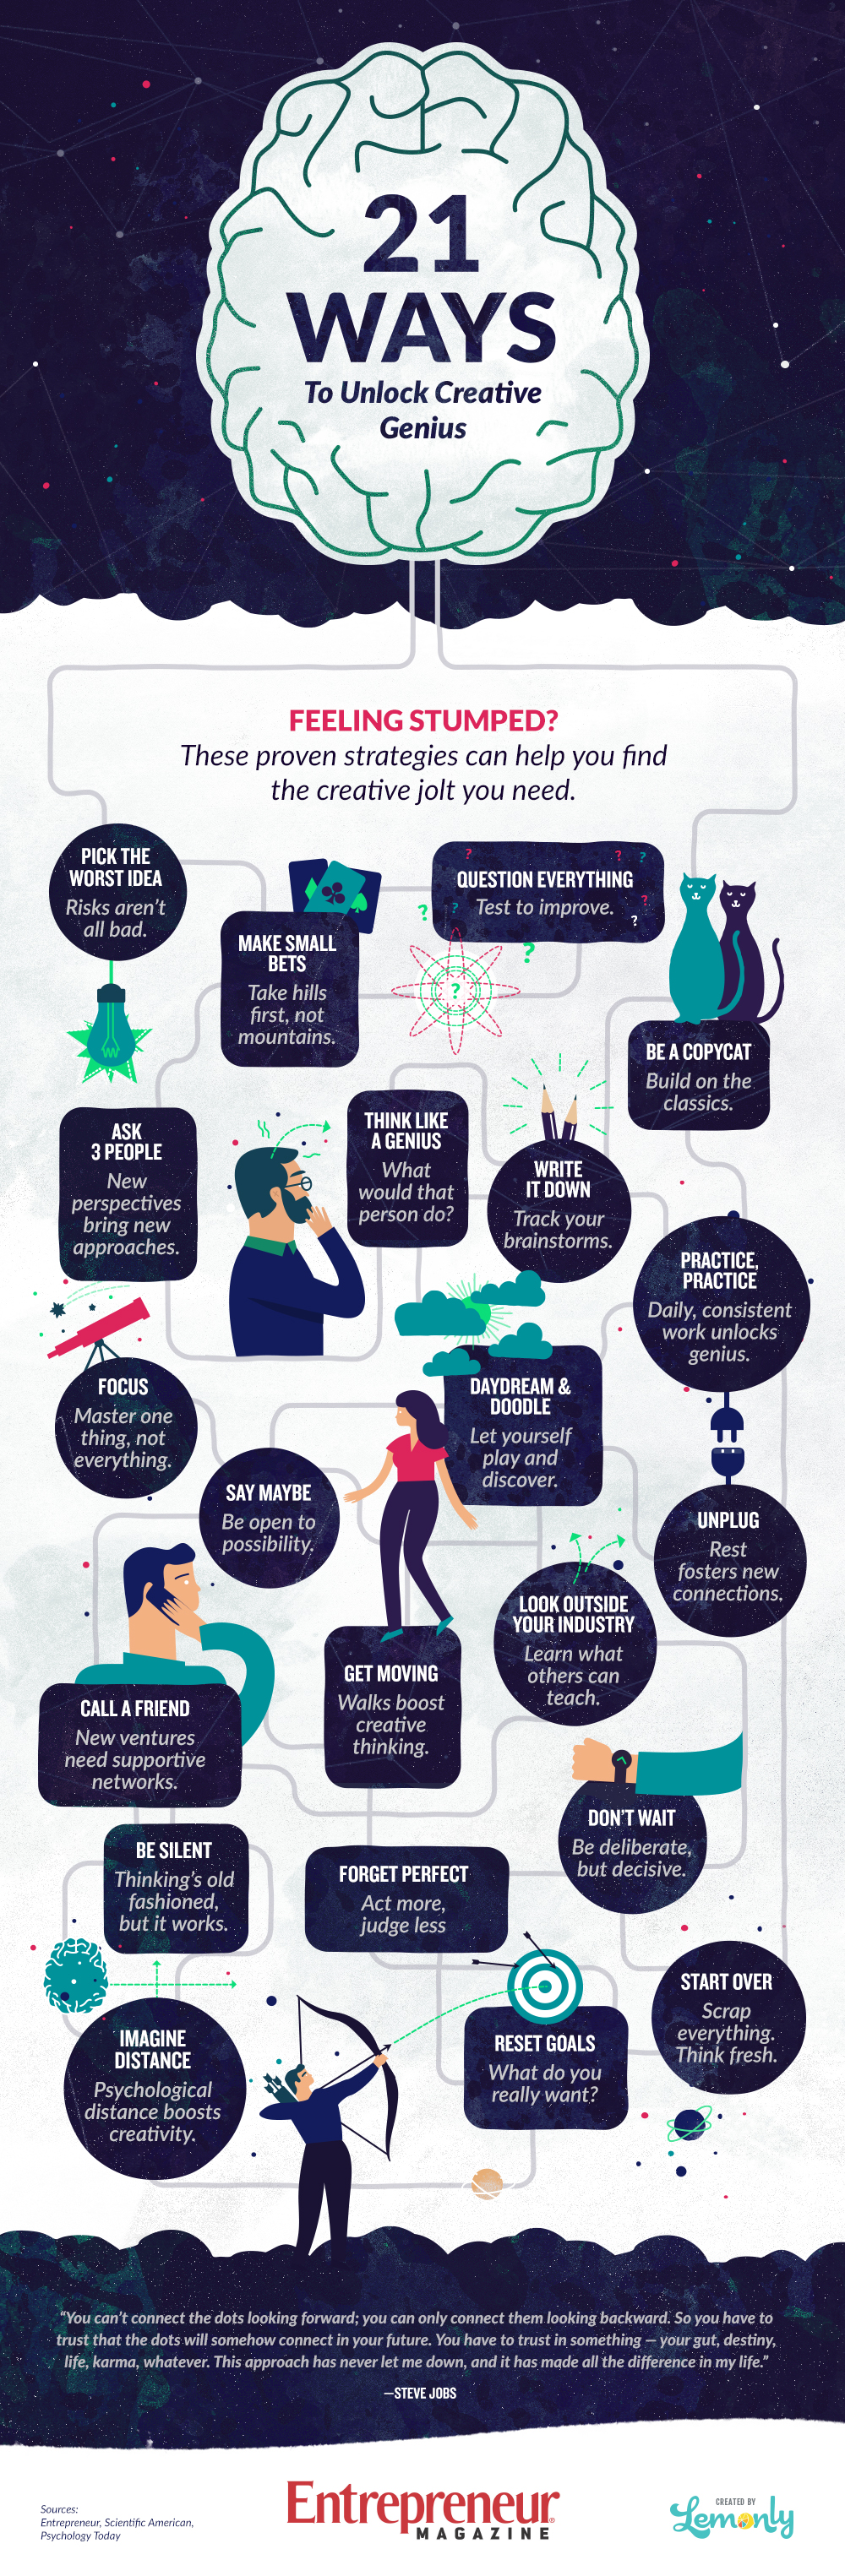 21 Ways To Unlock Your Creative Genius Infographic